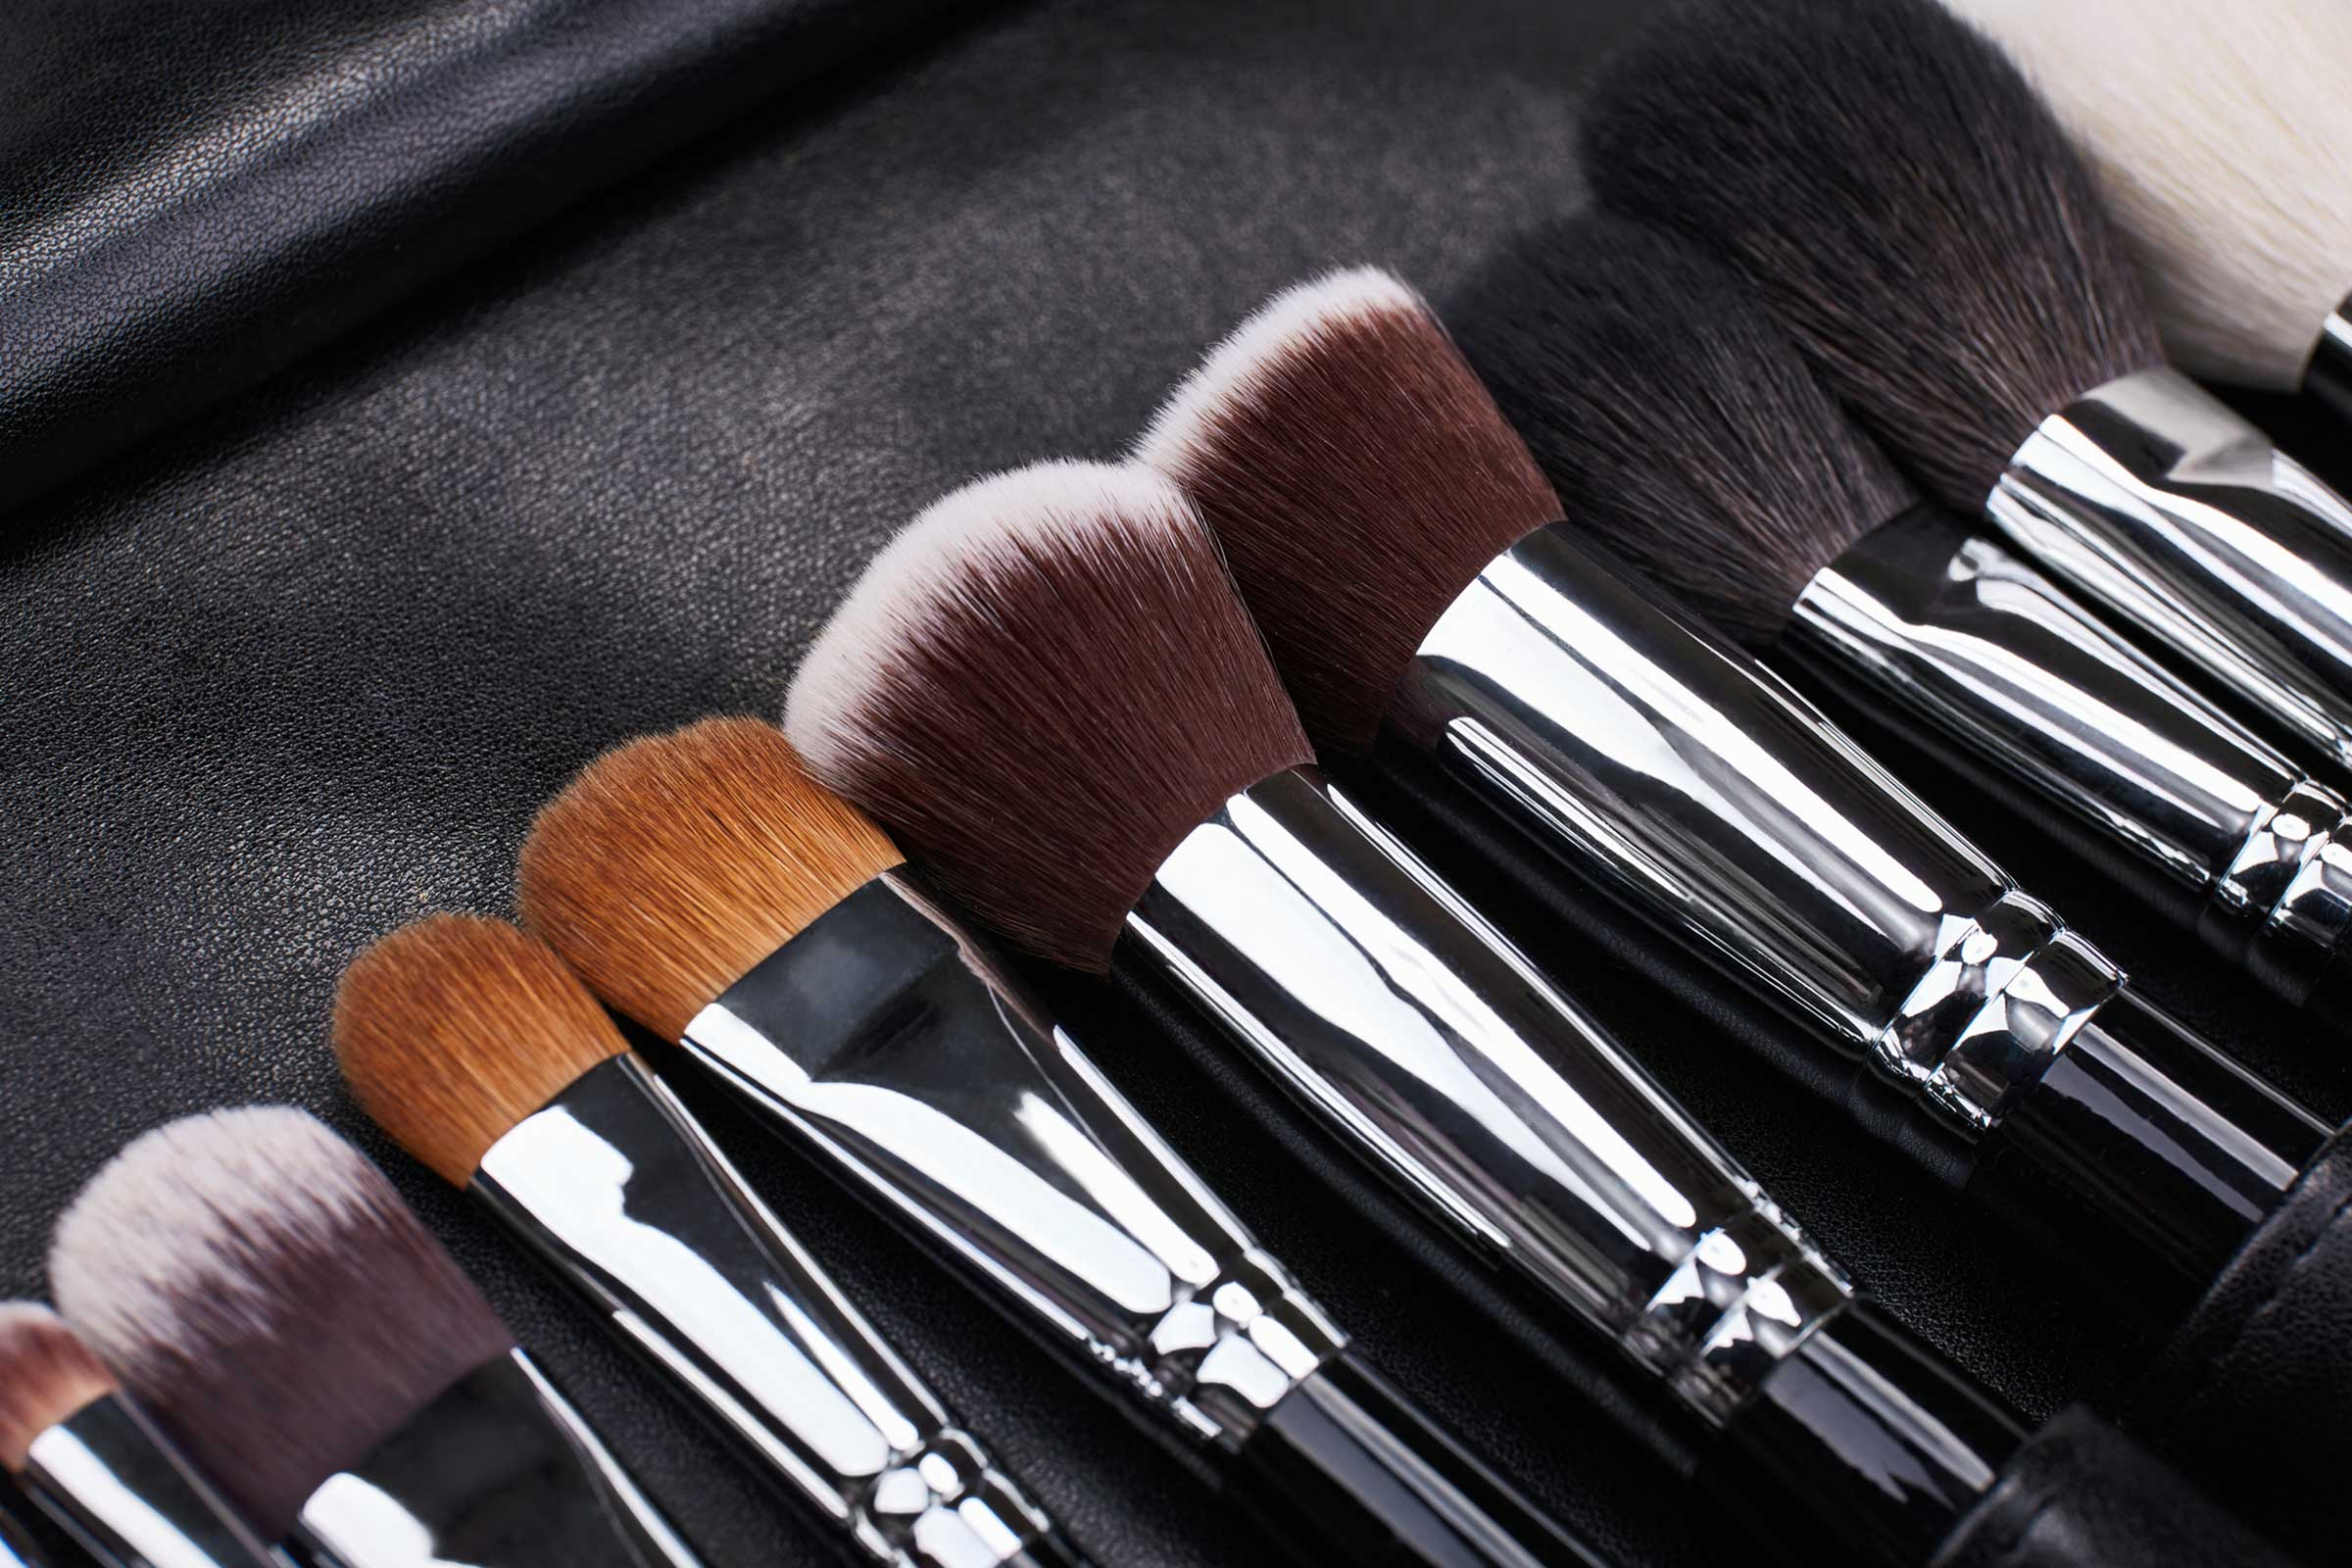 Buy Makeup Brushes online in Pakistan